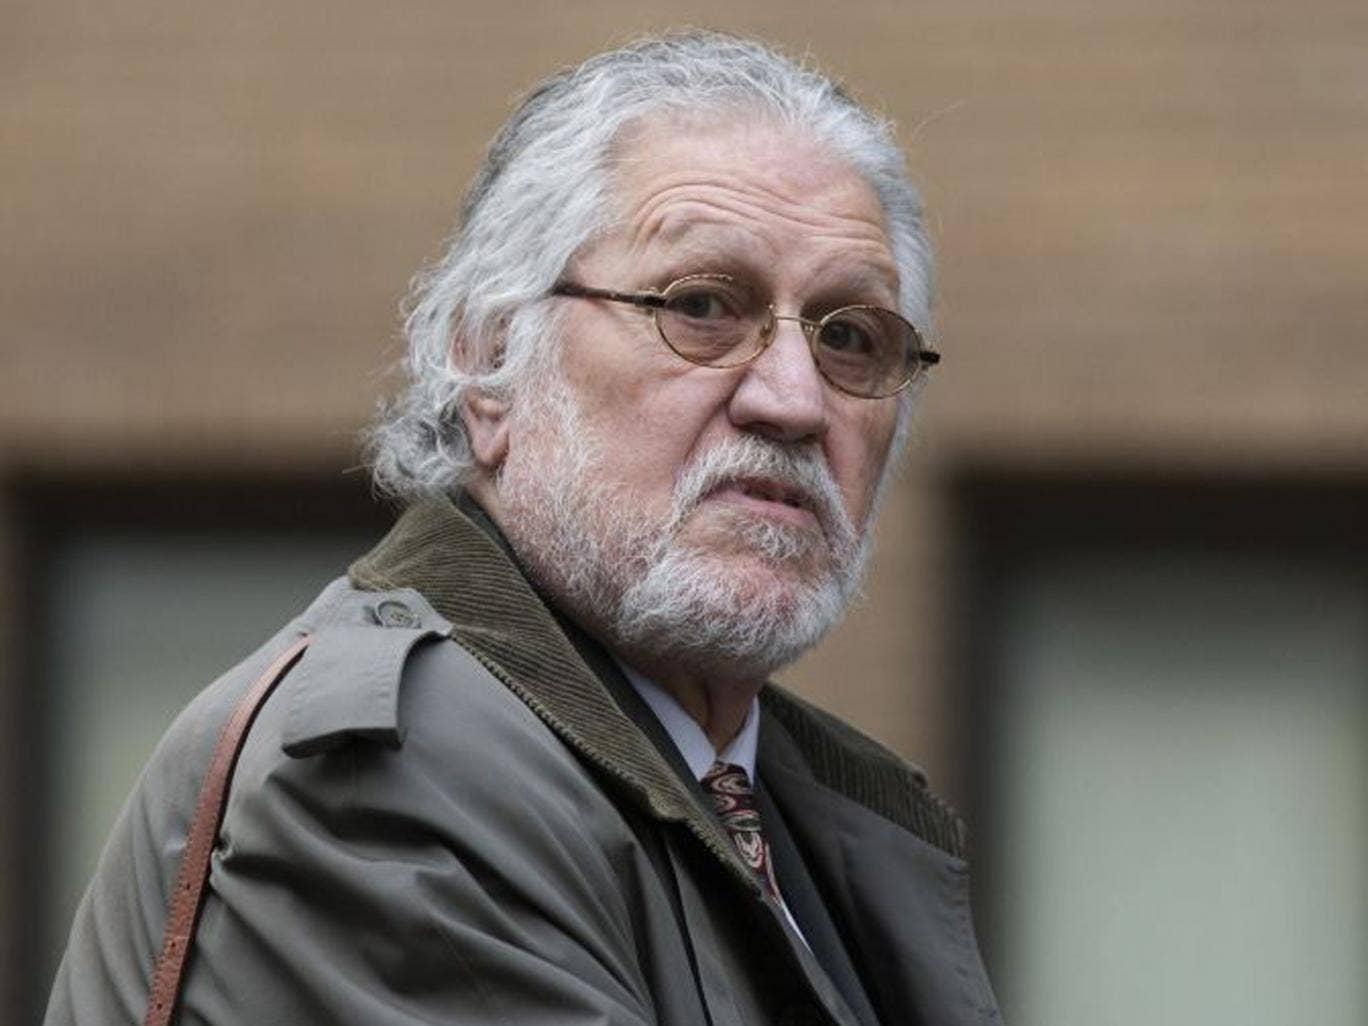 Radio presenter Dave Lee Travis arrives at Southwark Crown Court on 5 February 2014